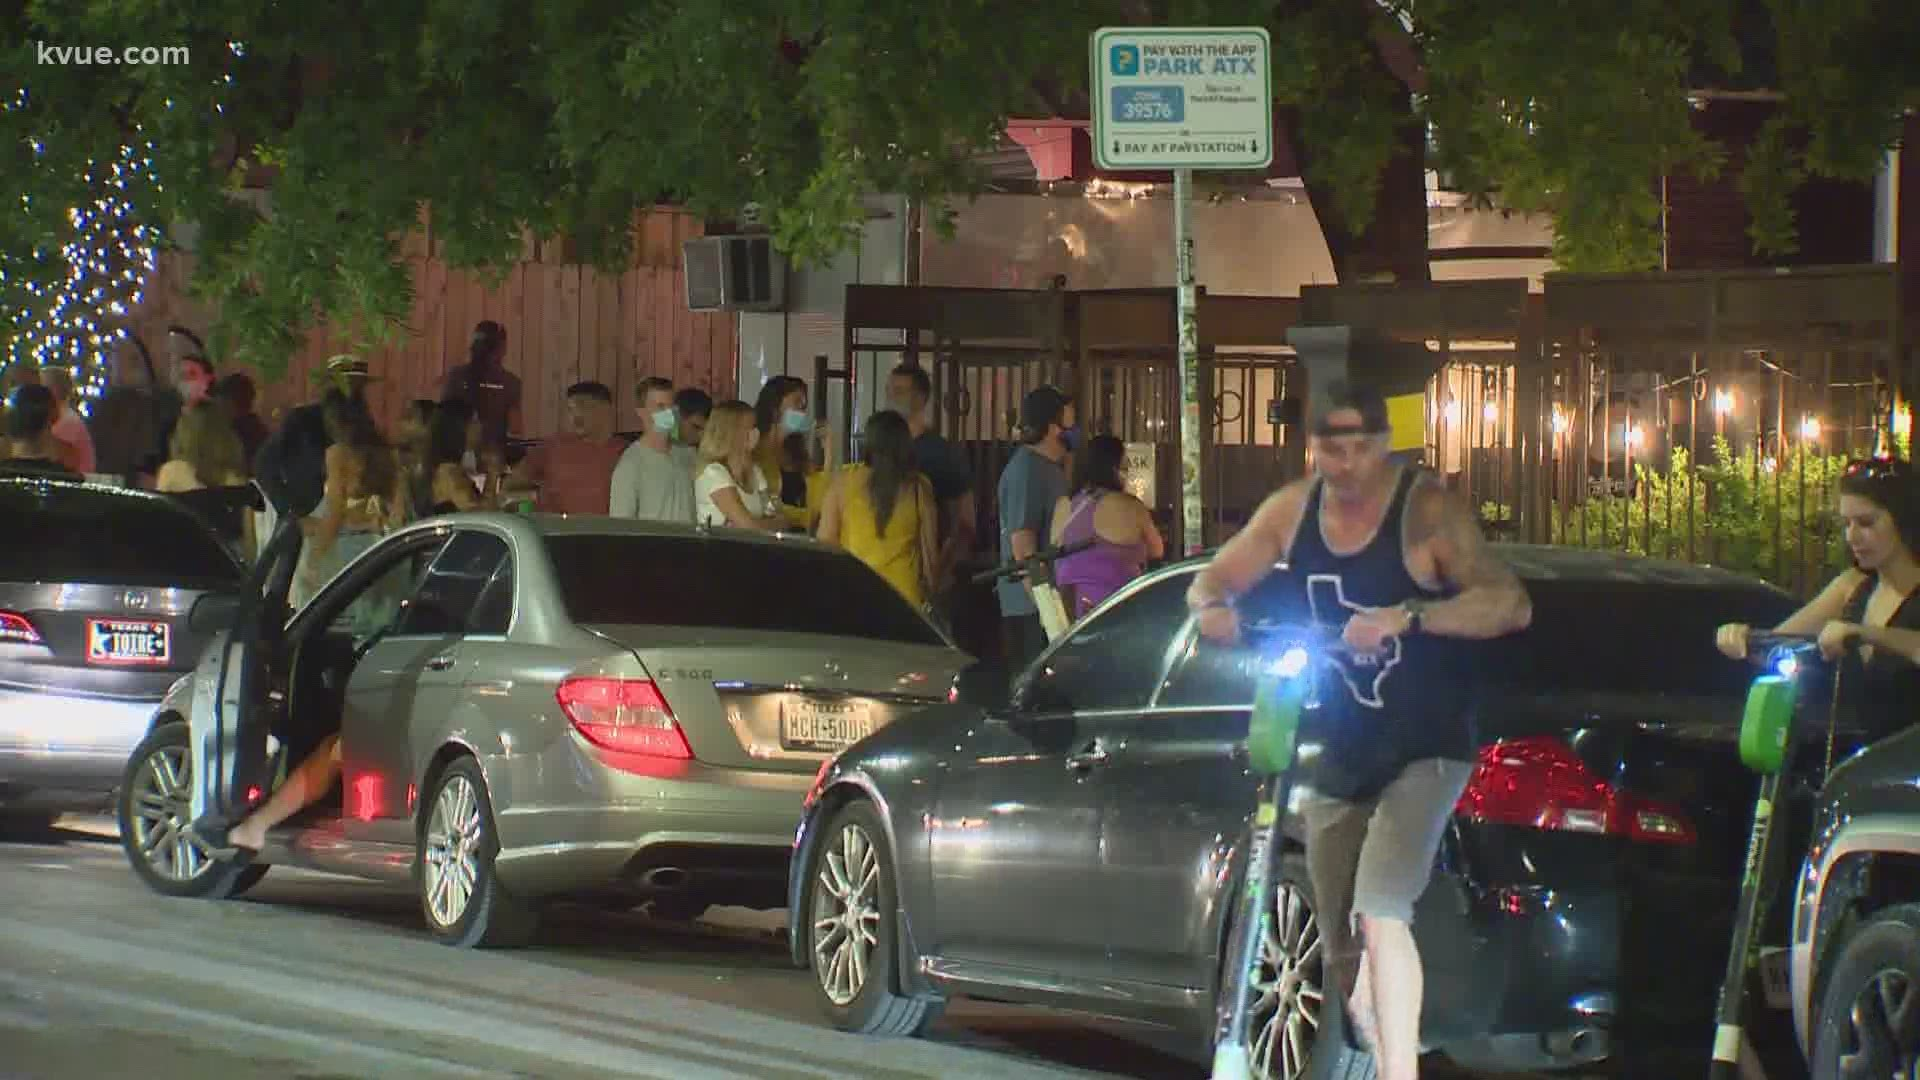 people visit bars other austin businesses over labor day weekend cbs19 tv cbs 19